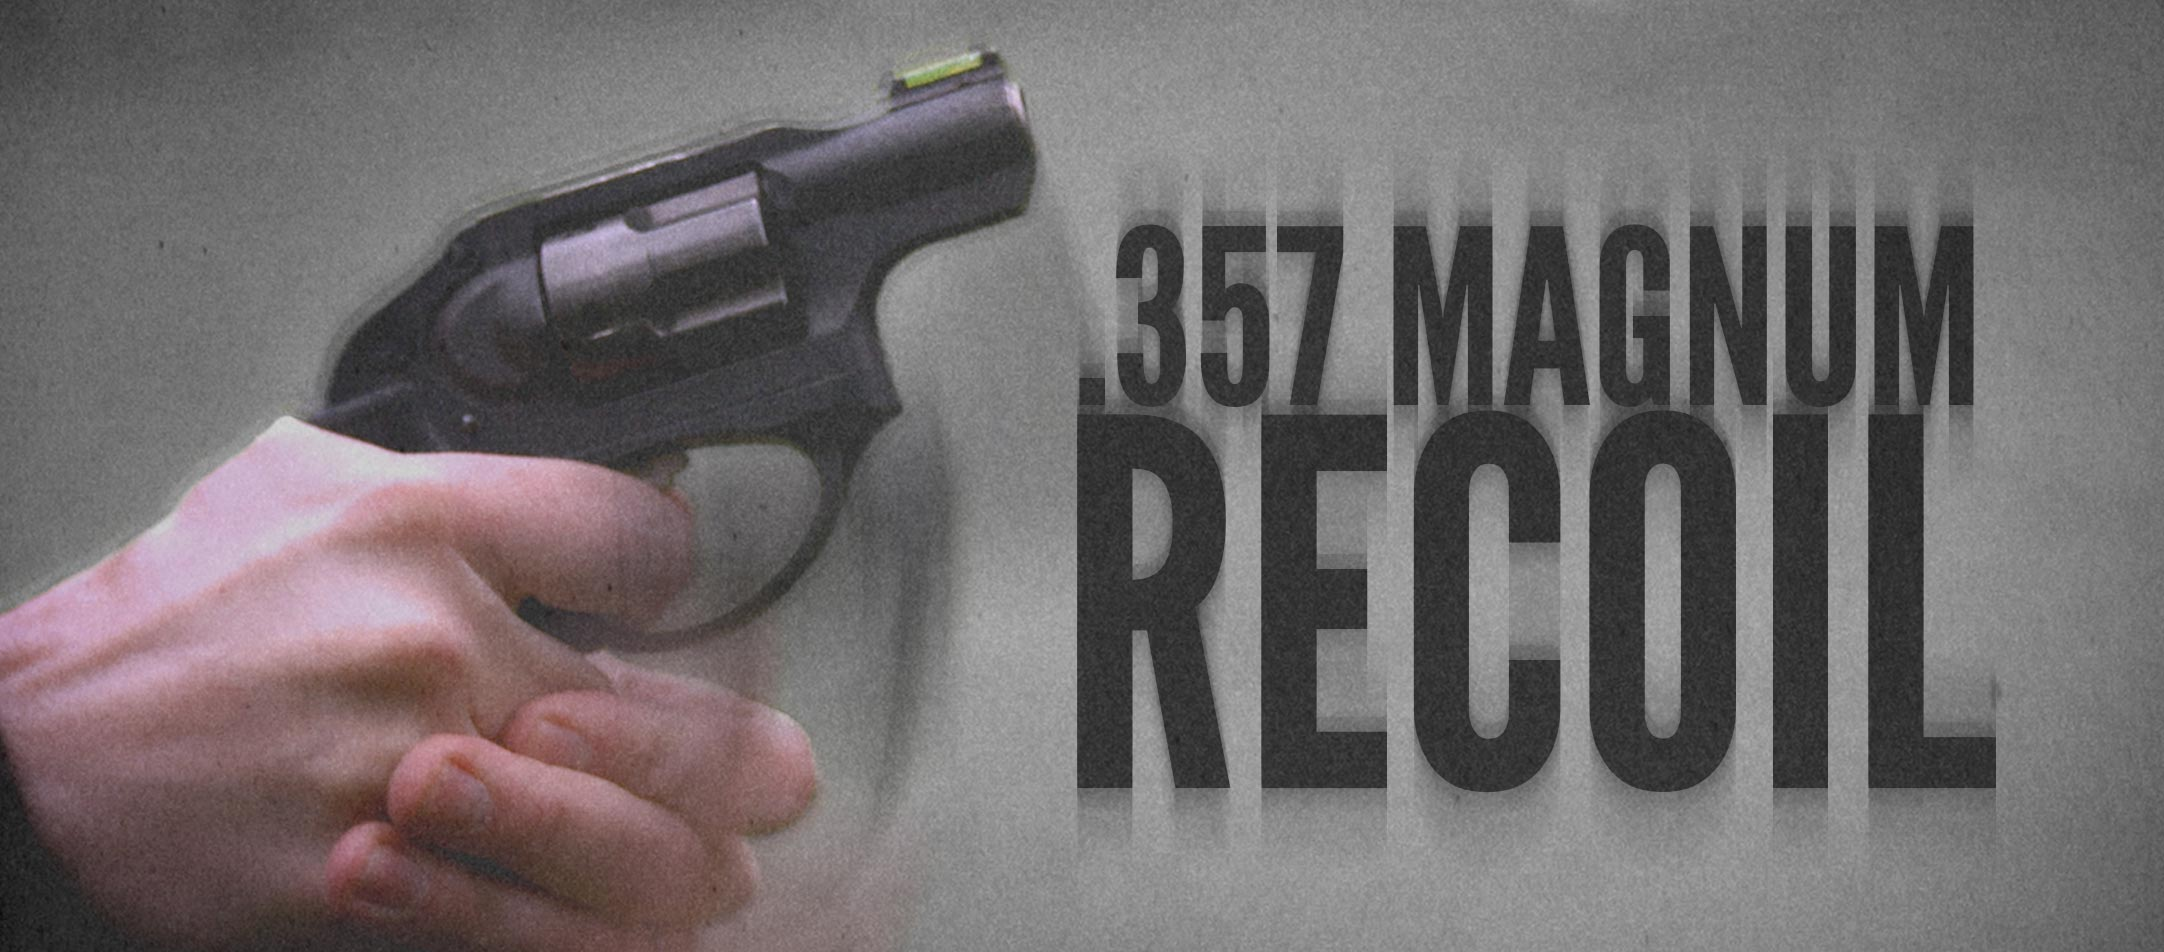 357 Magnum Recoil: Is It Too Much? - Lucky Gunner Lounge